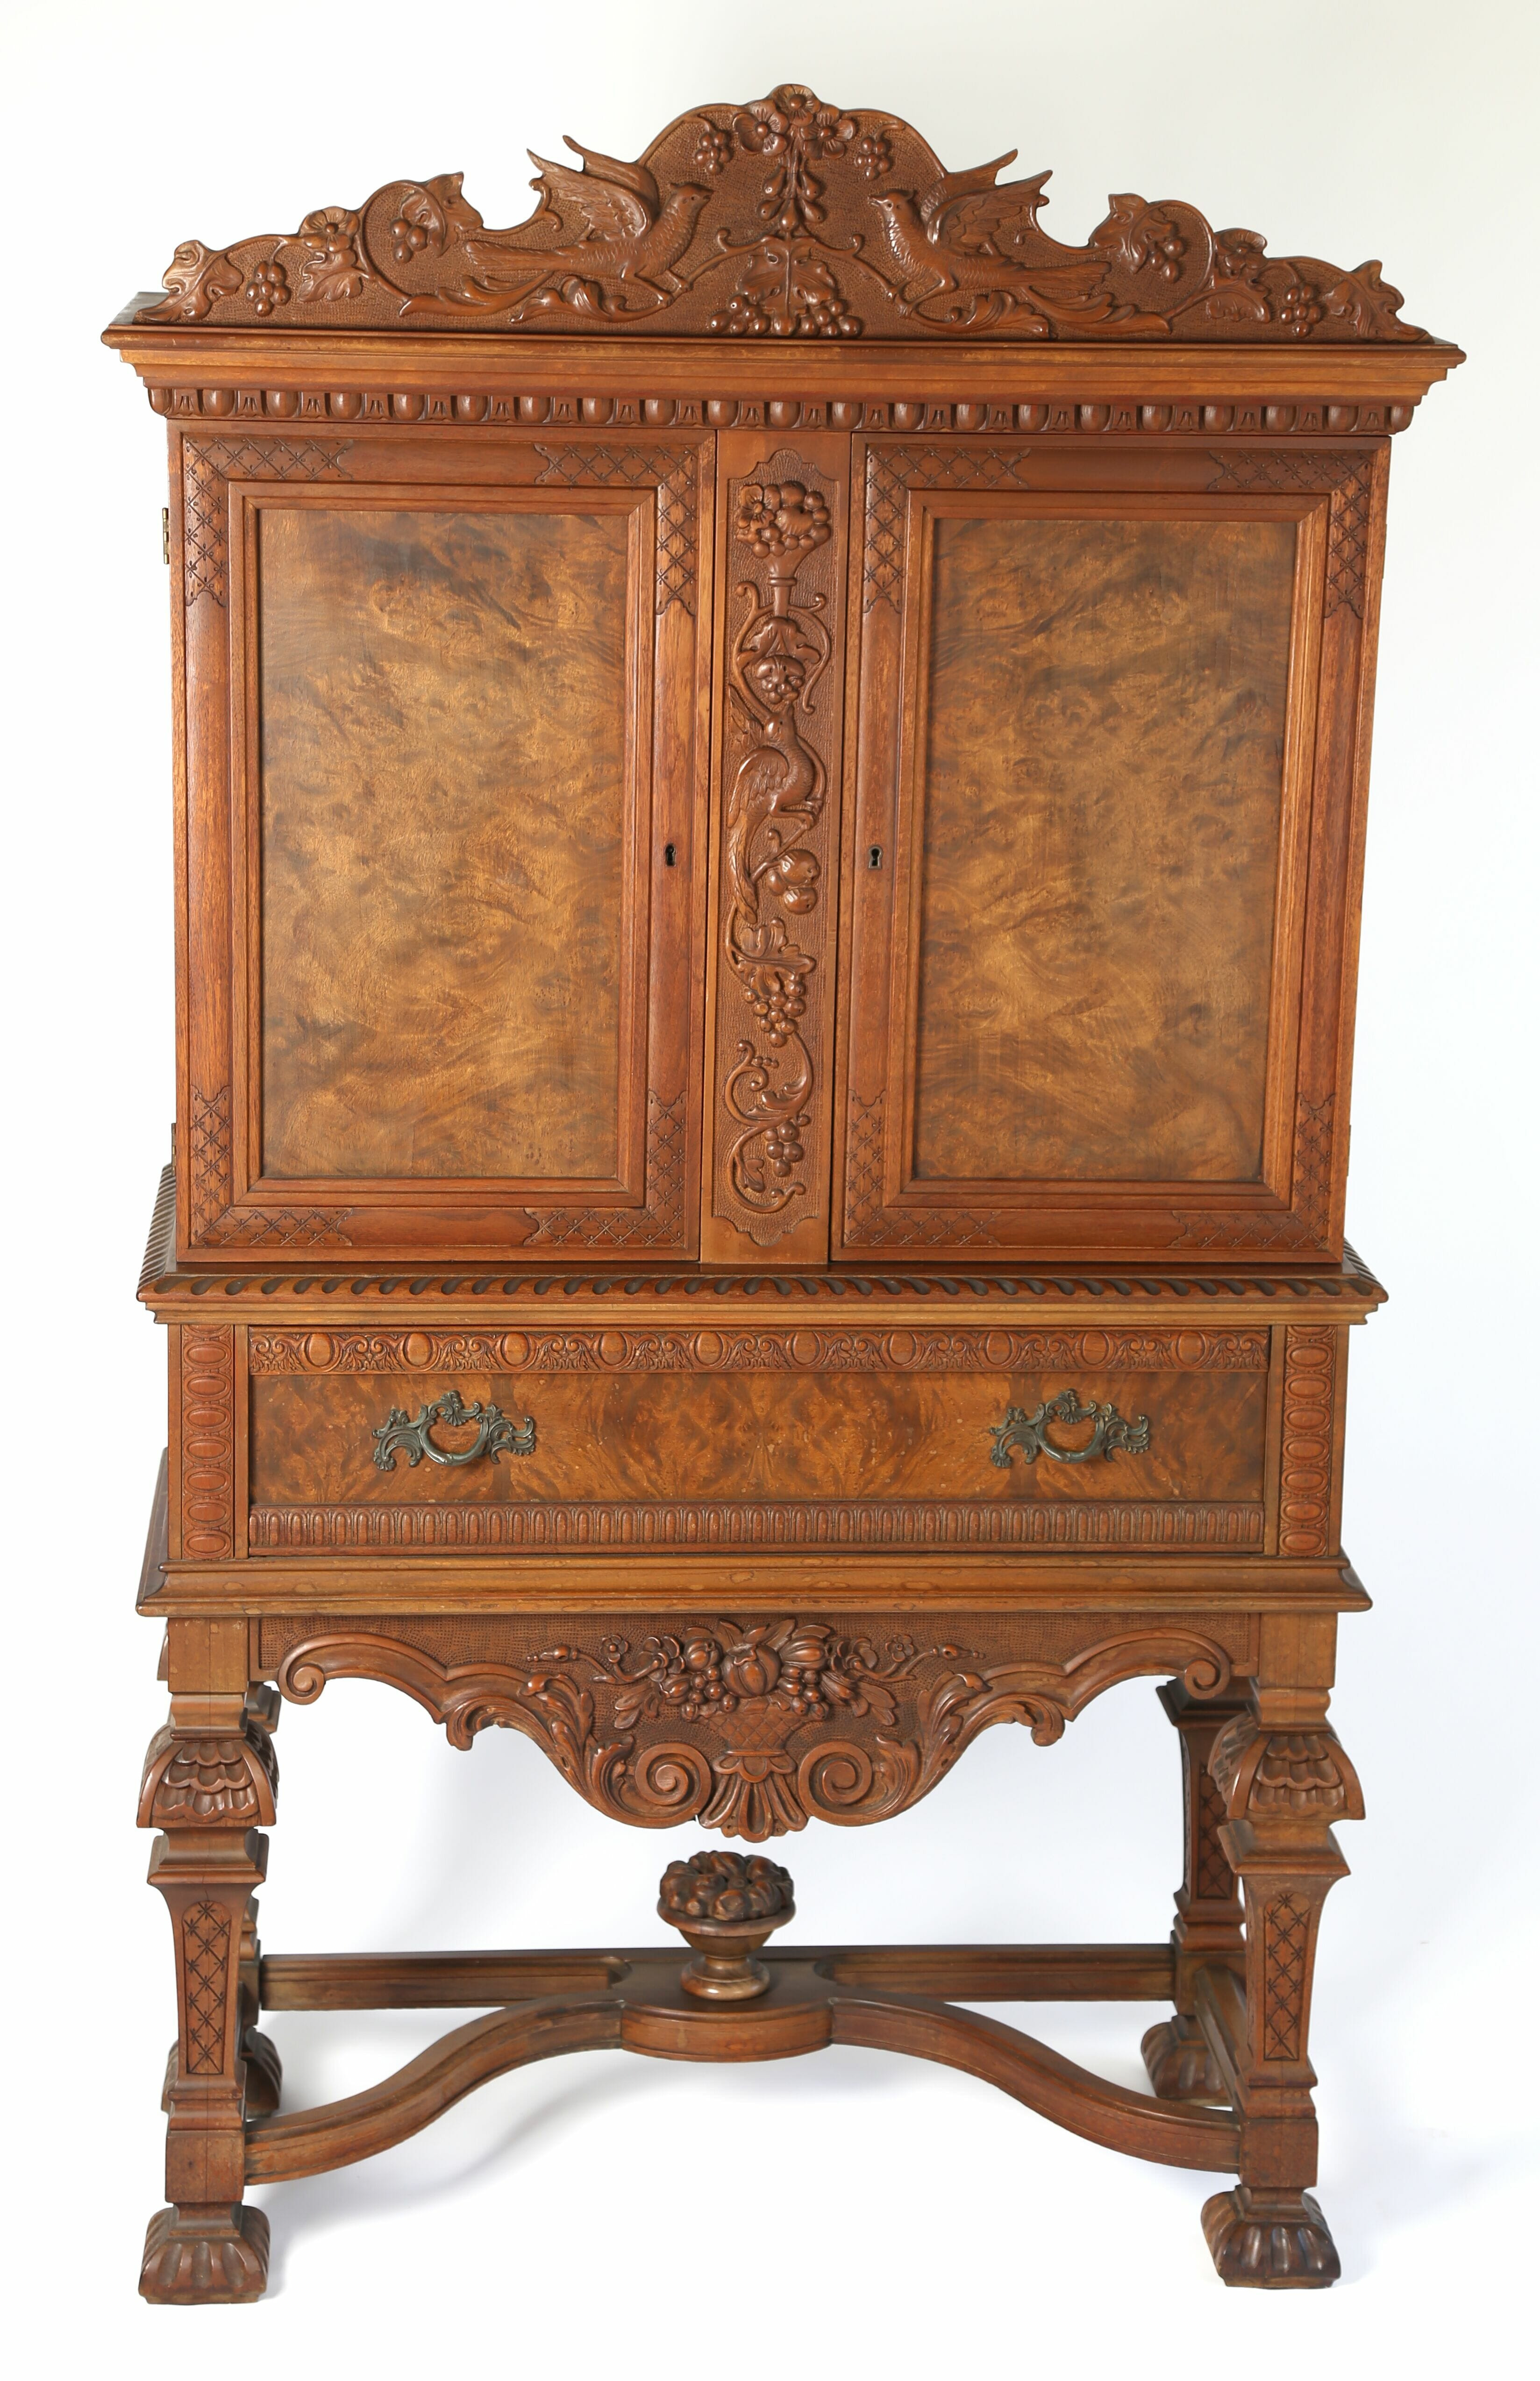 Spansih Style Cabinet 74 tall x 41 5 wide x 19 deep 2800 to 1950 Clearance 1400